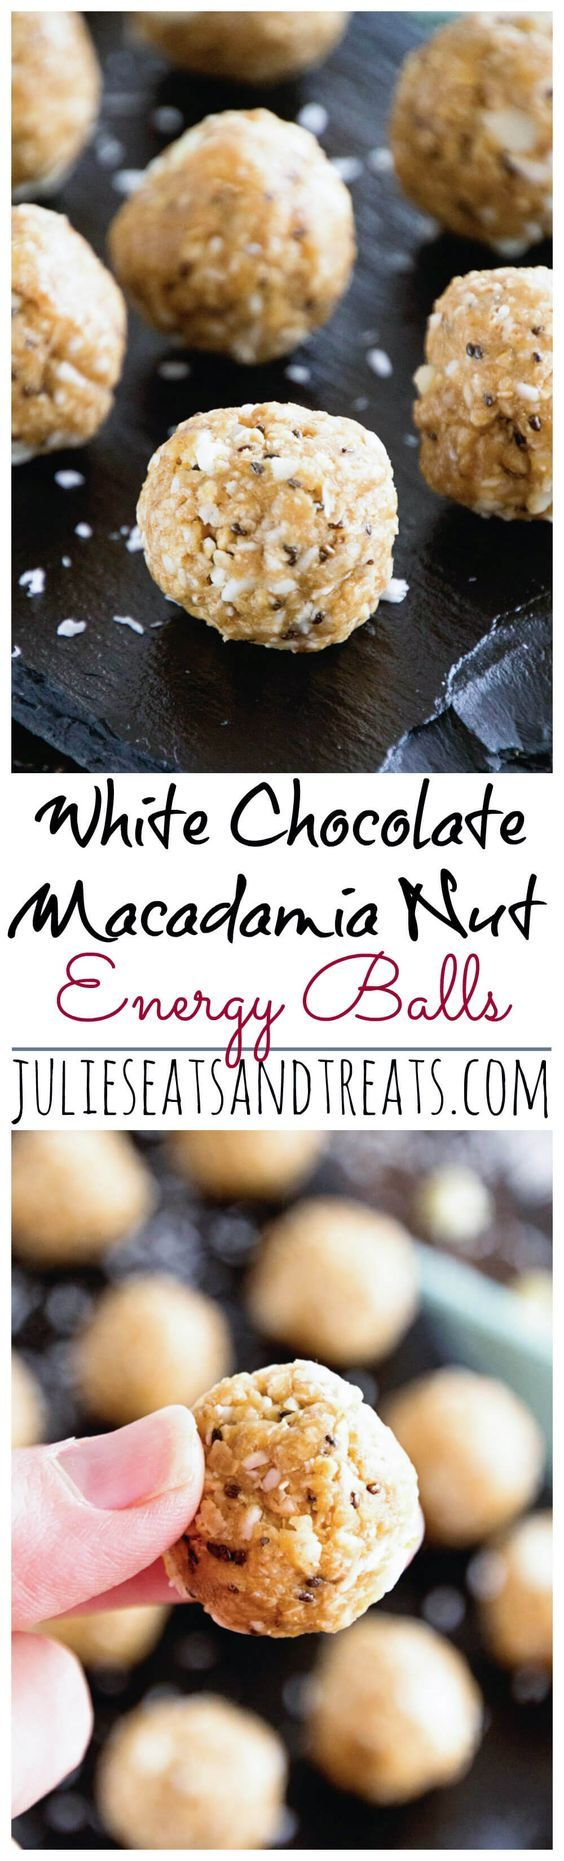 White Chocolate Macadamia Nut Energy Balls ~ Delicious Recipe for Energy Bites Loaded with White Chocolate Chips, Macadamia Nuts, Coconut, Oats, Flaxseed and Chia Seeds! ~ http://www.julieseatsandtreats.com